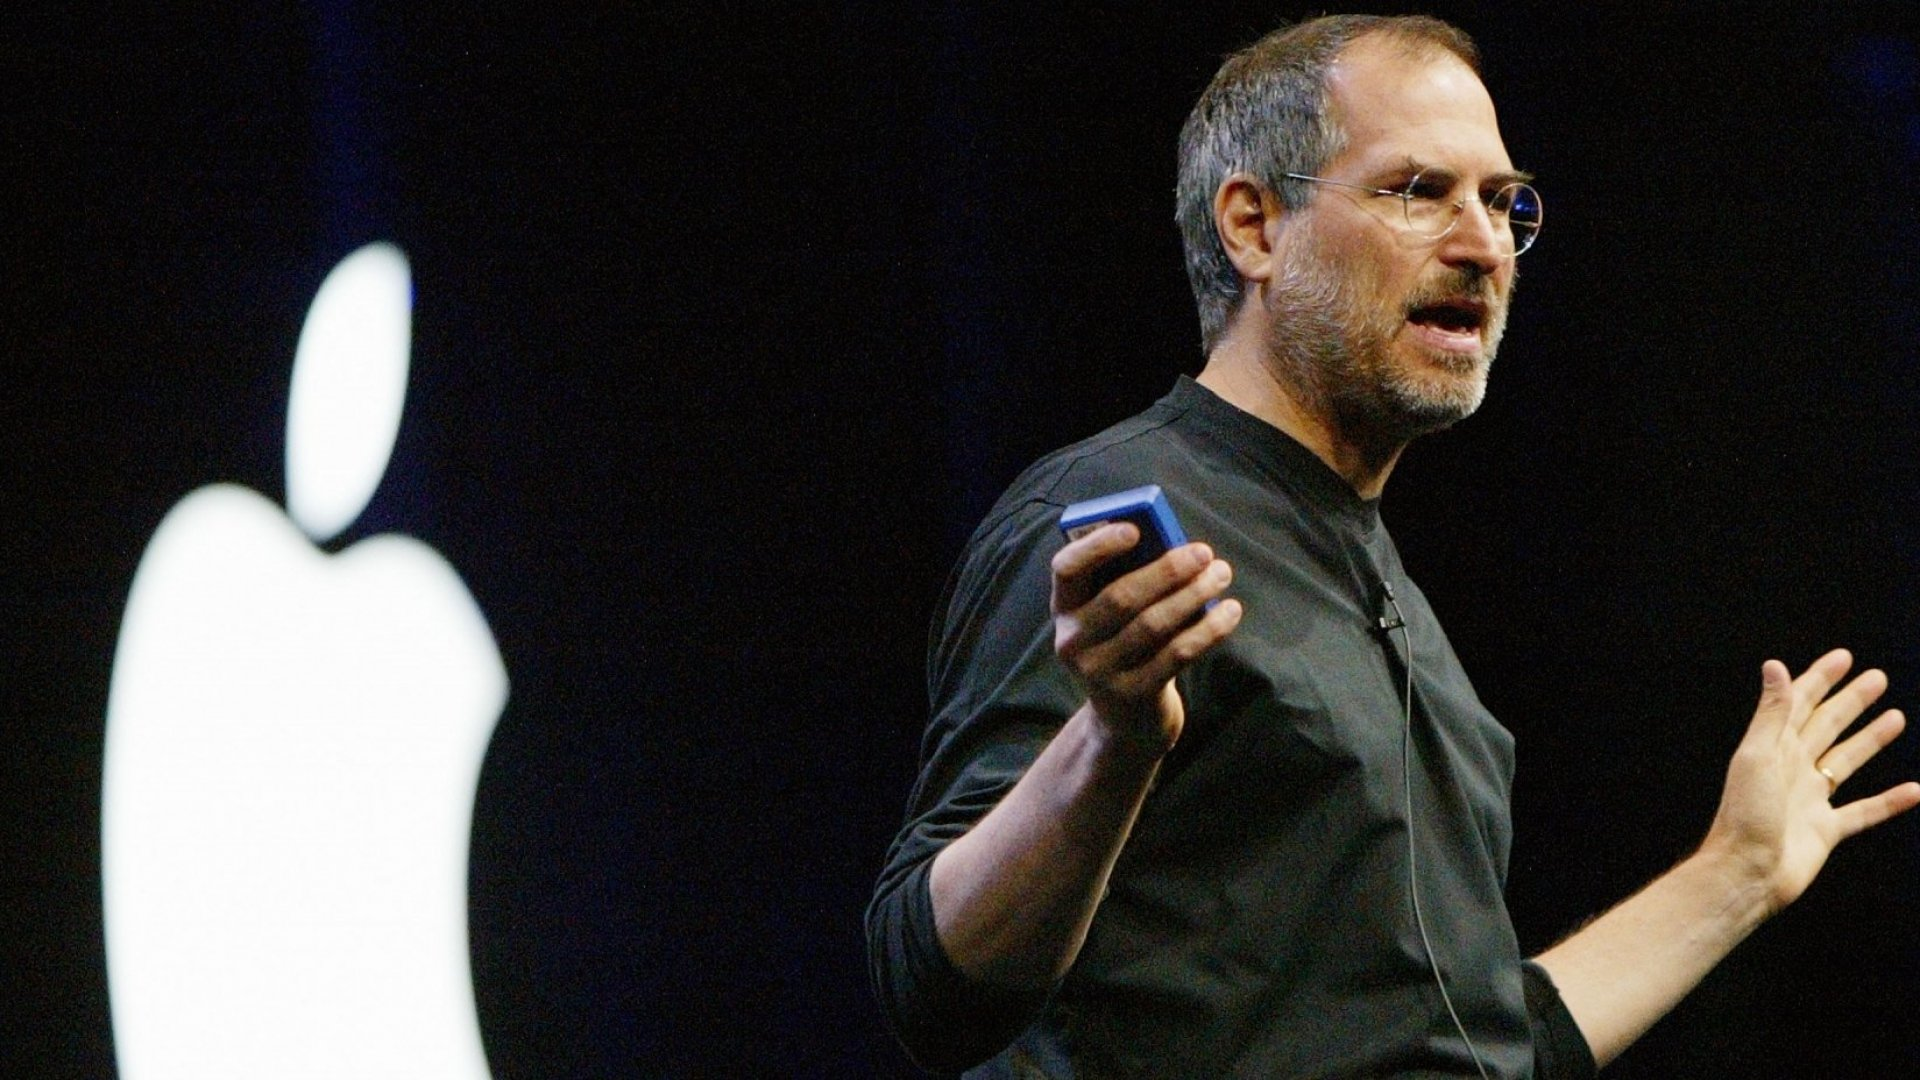 Why You Need to Follow the Steve Jobs Method and 'Work Backwards'